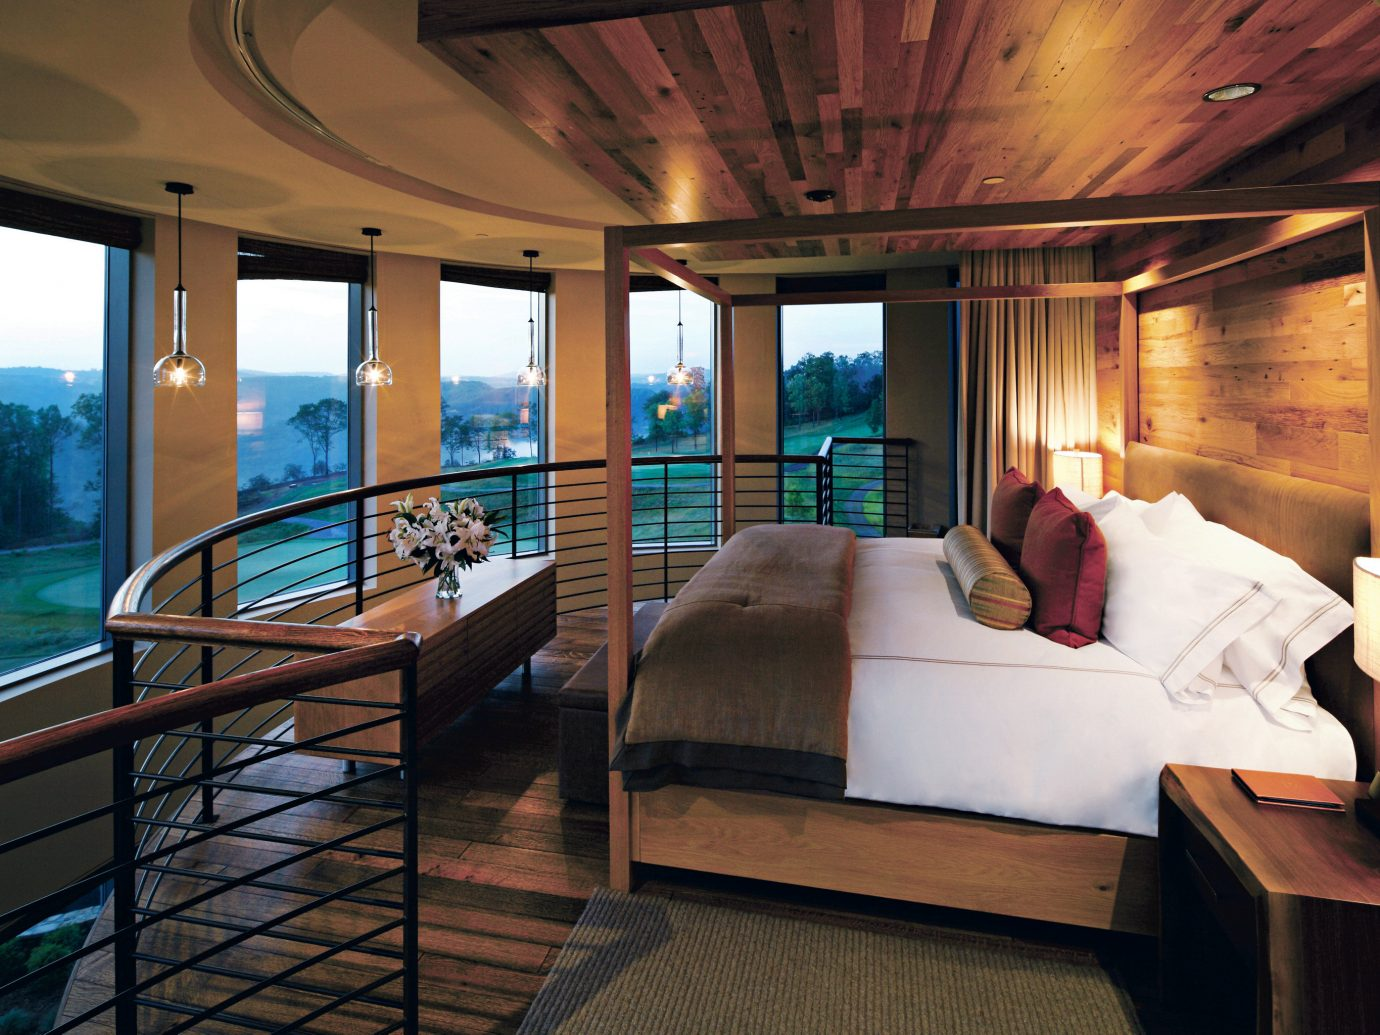 Bedroom Country Hotels Modern Scenic views Suite indoor table floor ceiling room window property passenger ship yacht Living estate Boat vehicle interior design Resort furniture luxury yacht Villa area